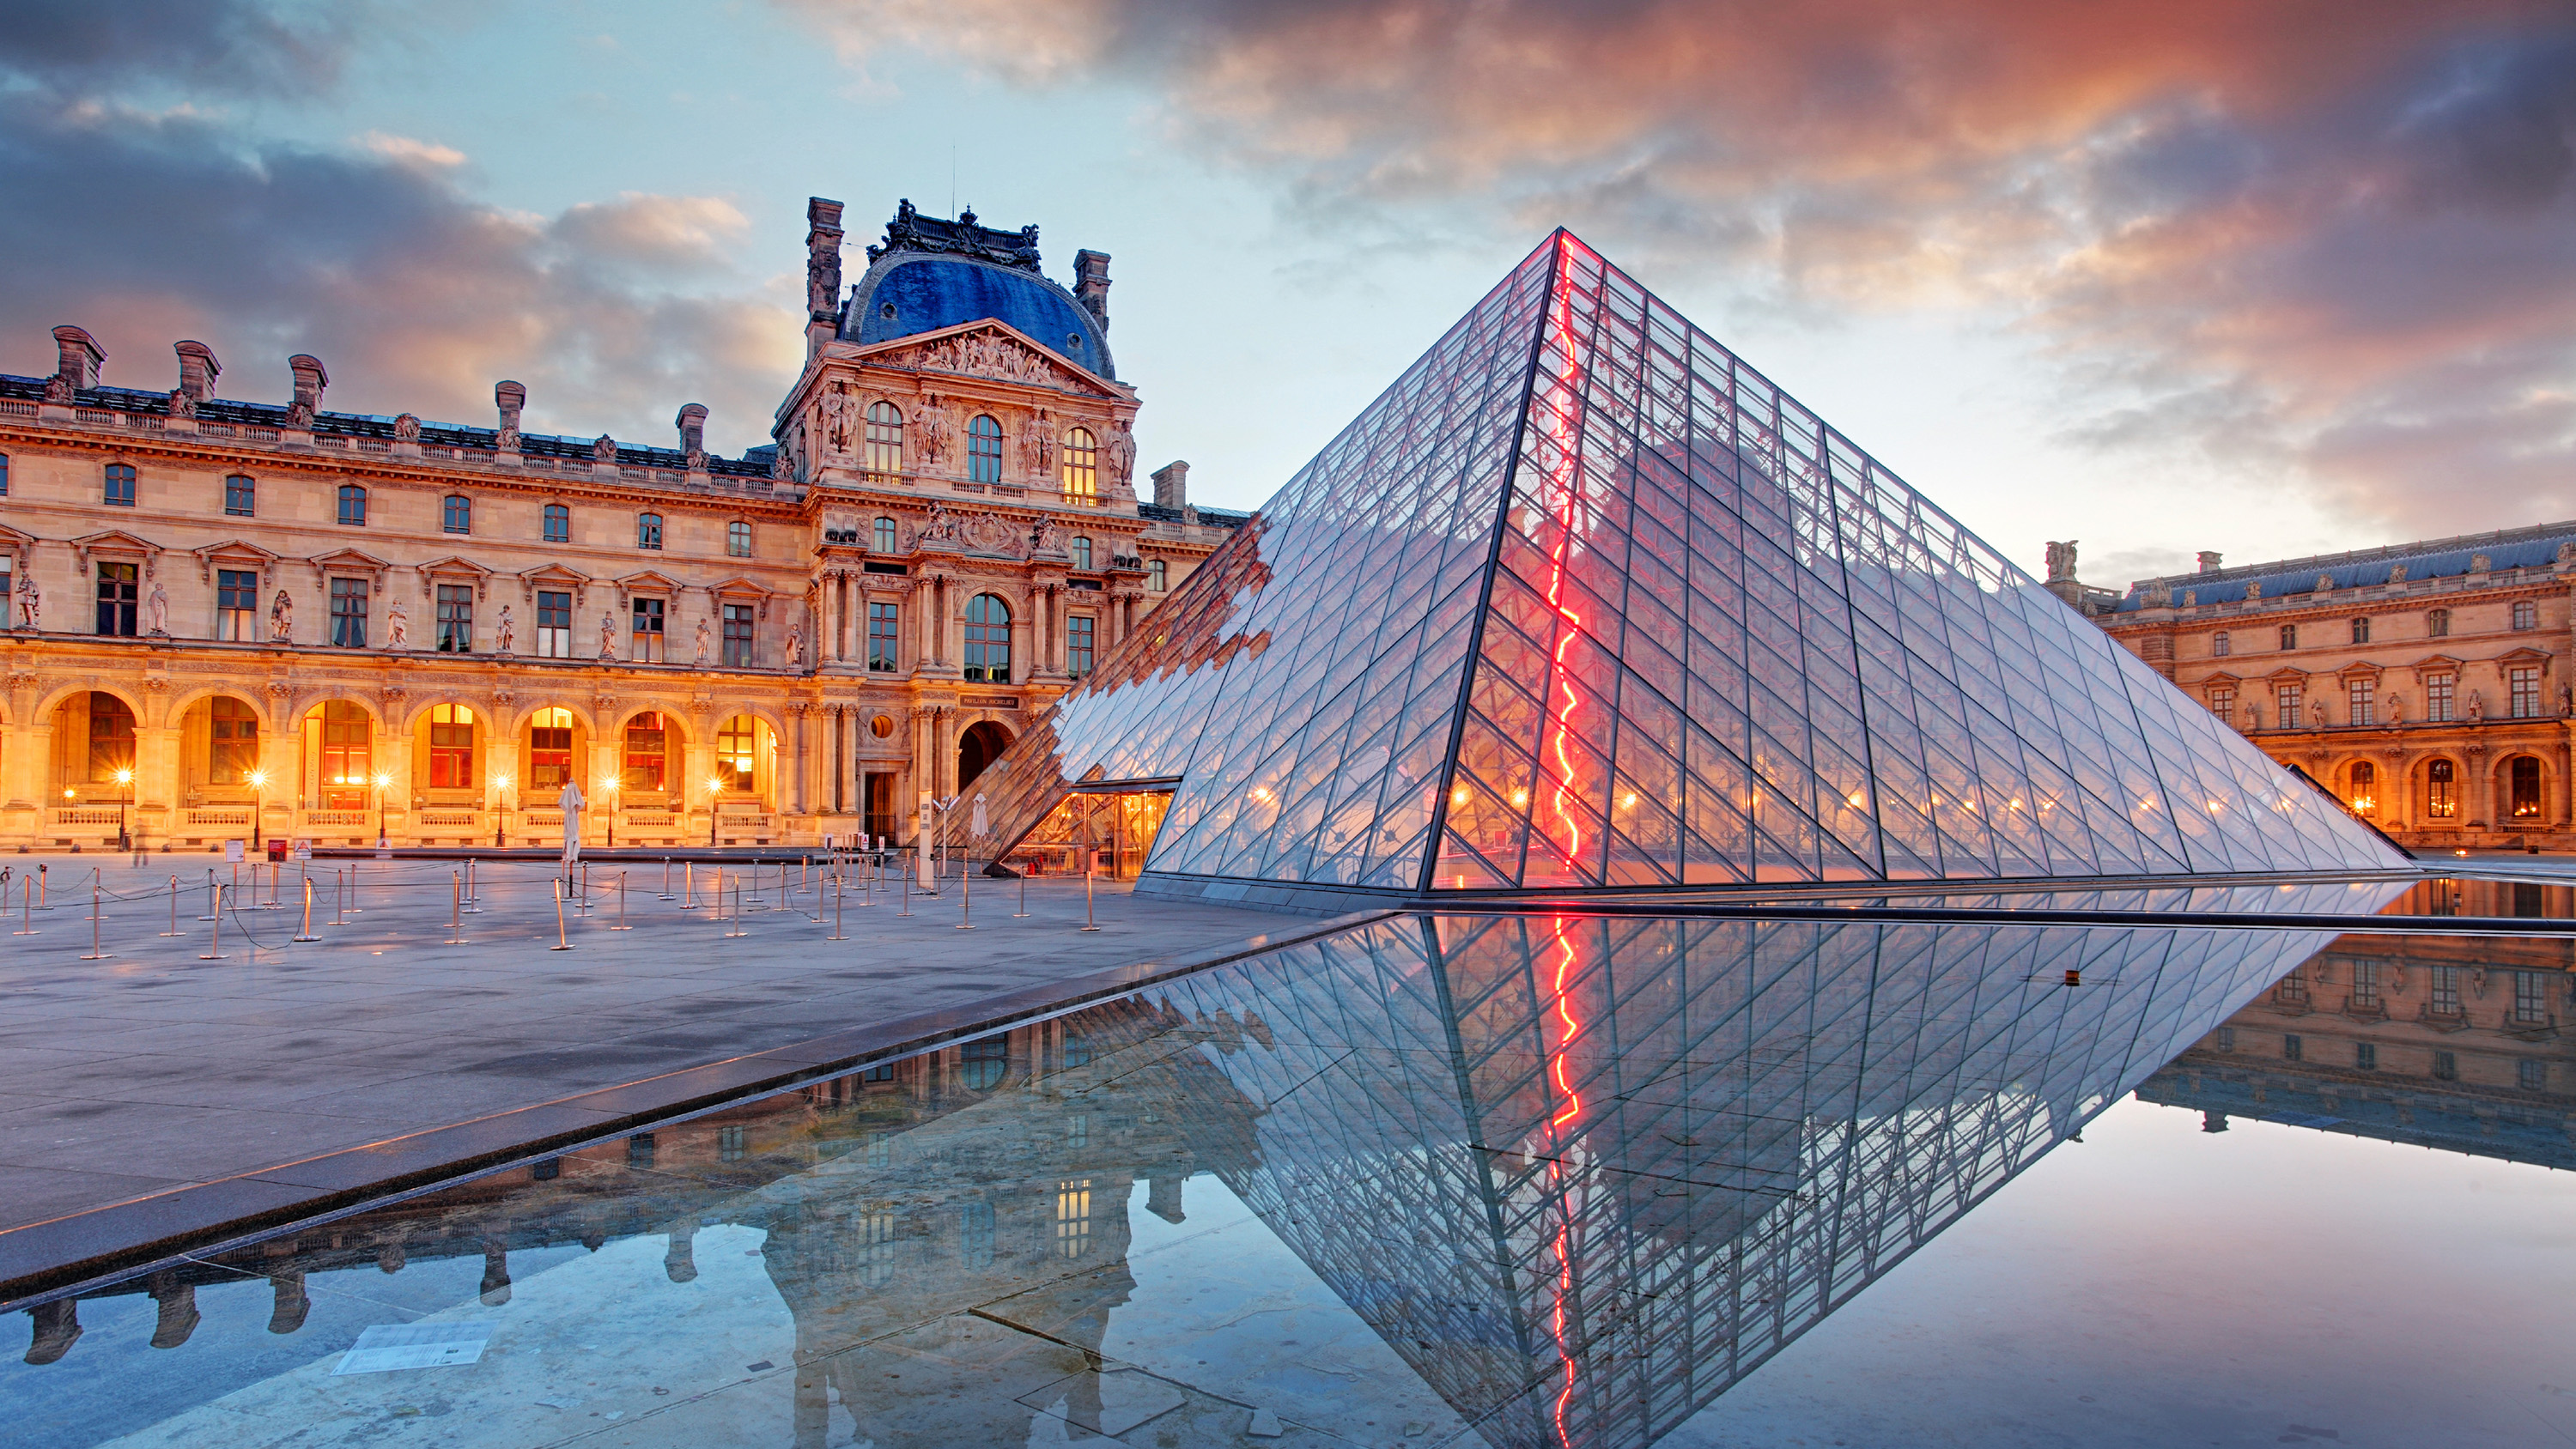 Paris, Louvre Museum and the Pyramid